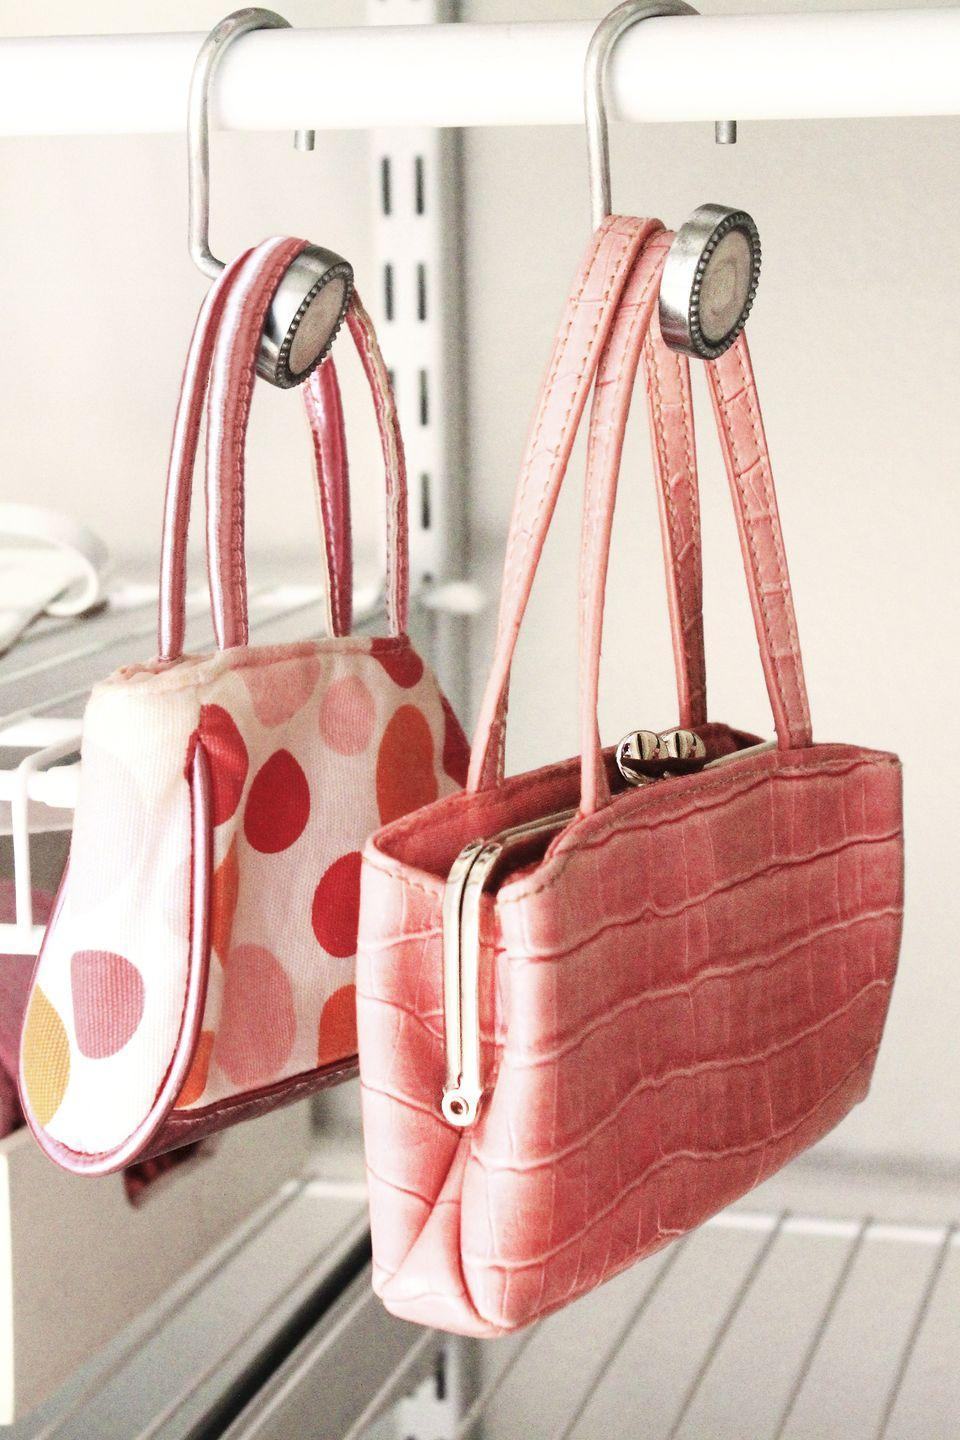 """<p>Bent to the side, these bathroom staples keep your bags off the floor.</p><p><em><a href=""""http://www.homemadebycarmona.com/princess-pink-closet/"""" rel=""""nofollow noopener"""" target=""""_blank"""" data-ylk=""""slk:See more at Homemade by Carmona »"""" class=""""link rapid-noclick-resp"""">See more at Homemade by Carmona »</a> </em></p>"""